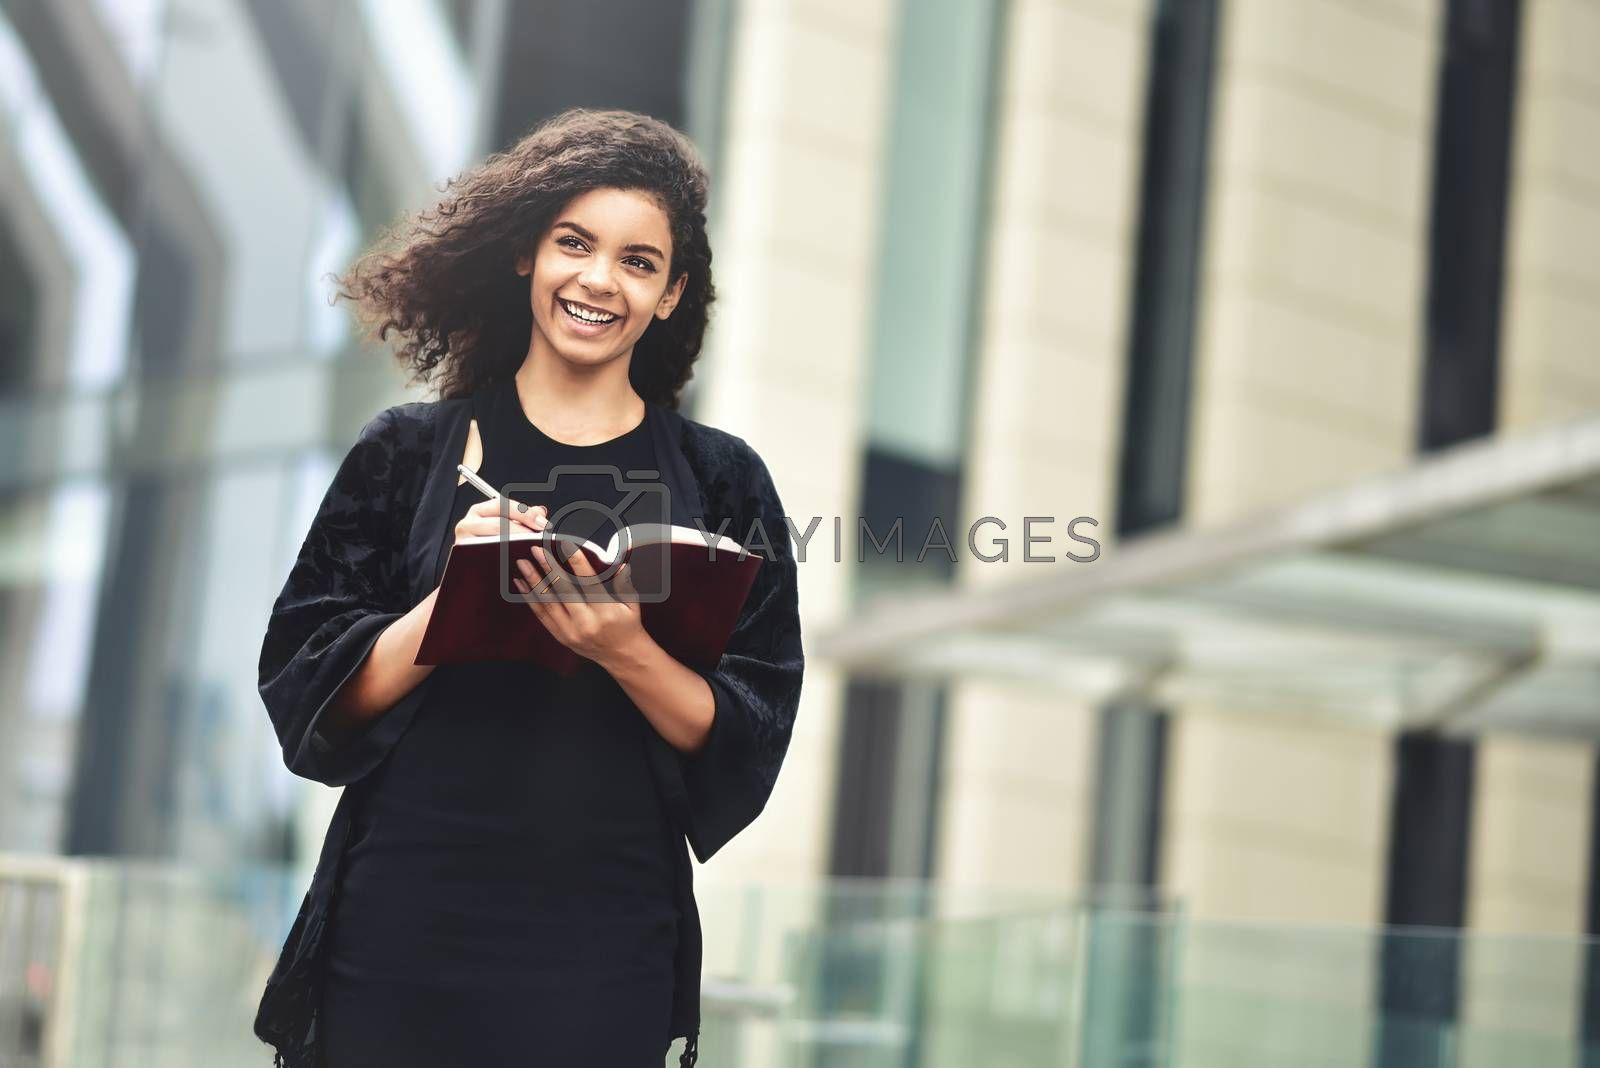 Charming Afro American beautiful happy female, making notes in notepad while walking outdoors on a city street. Education and business concept with space for text.